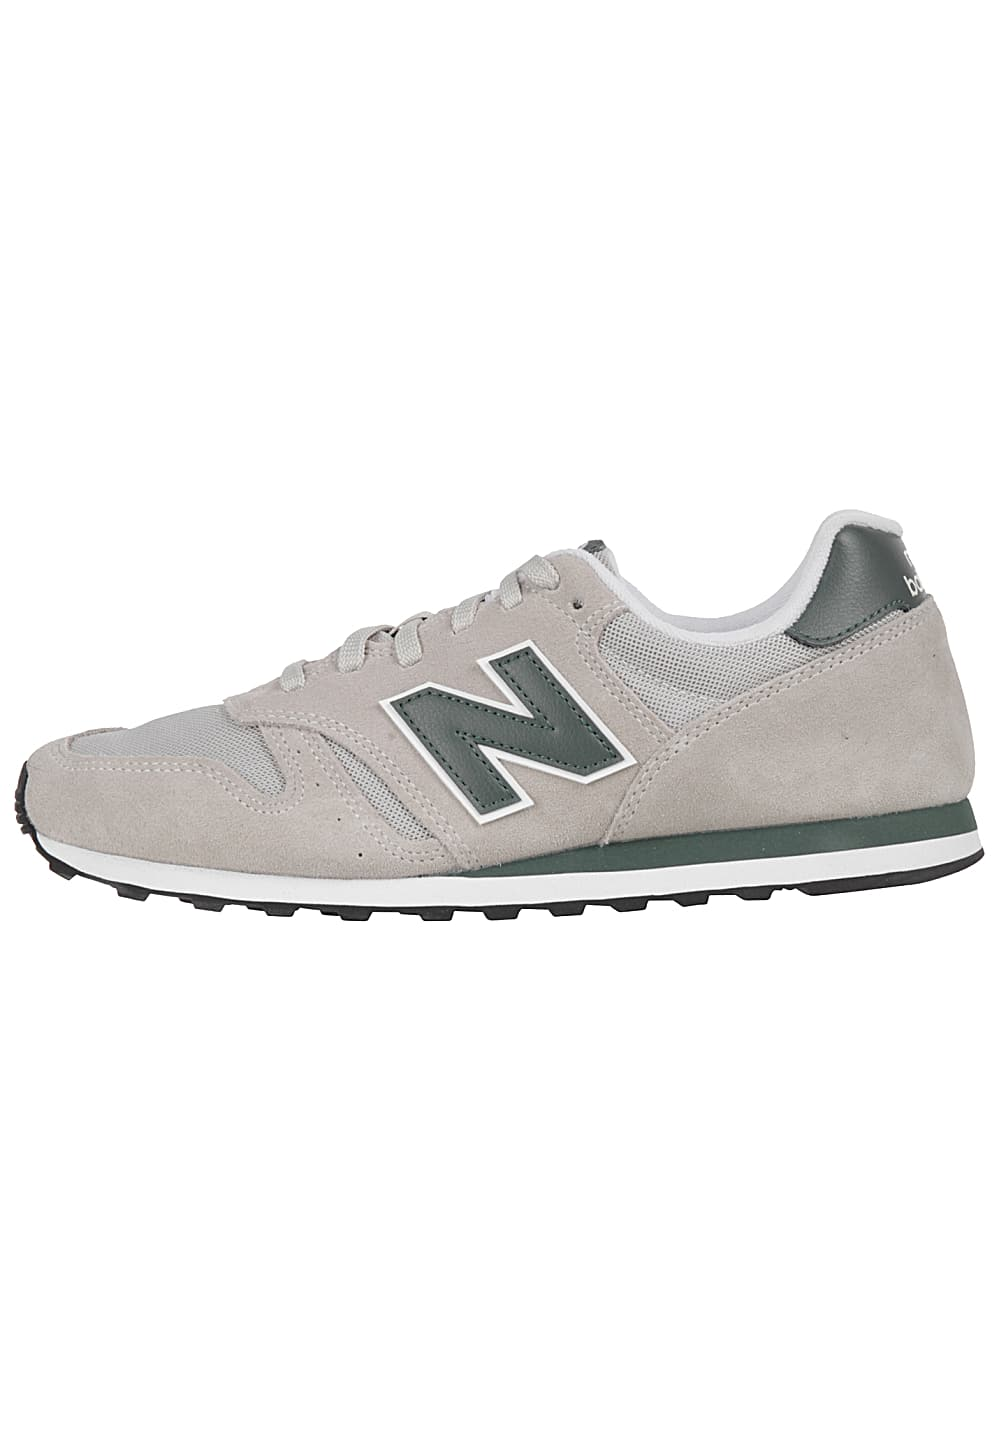 NEW BALANCE ML373 D - Sneaker für Herren - Beige - Planet Sports